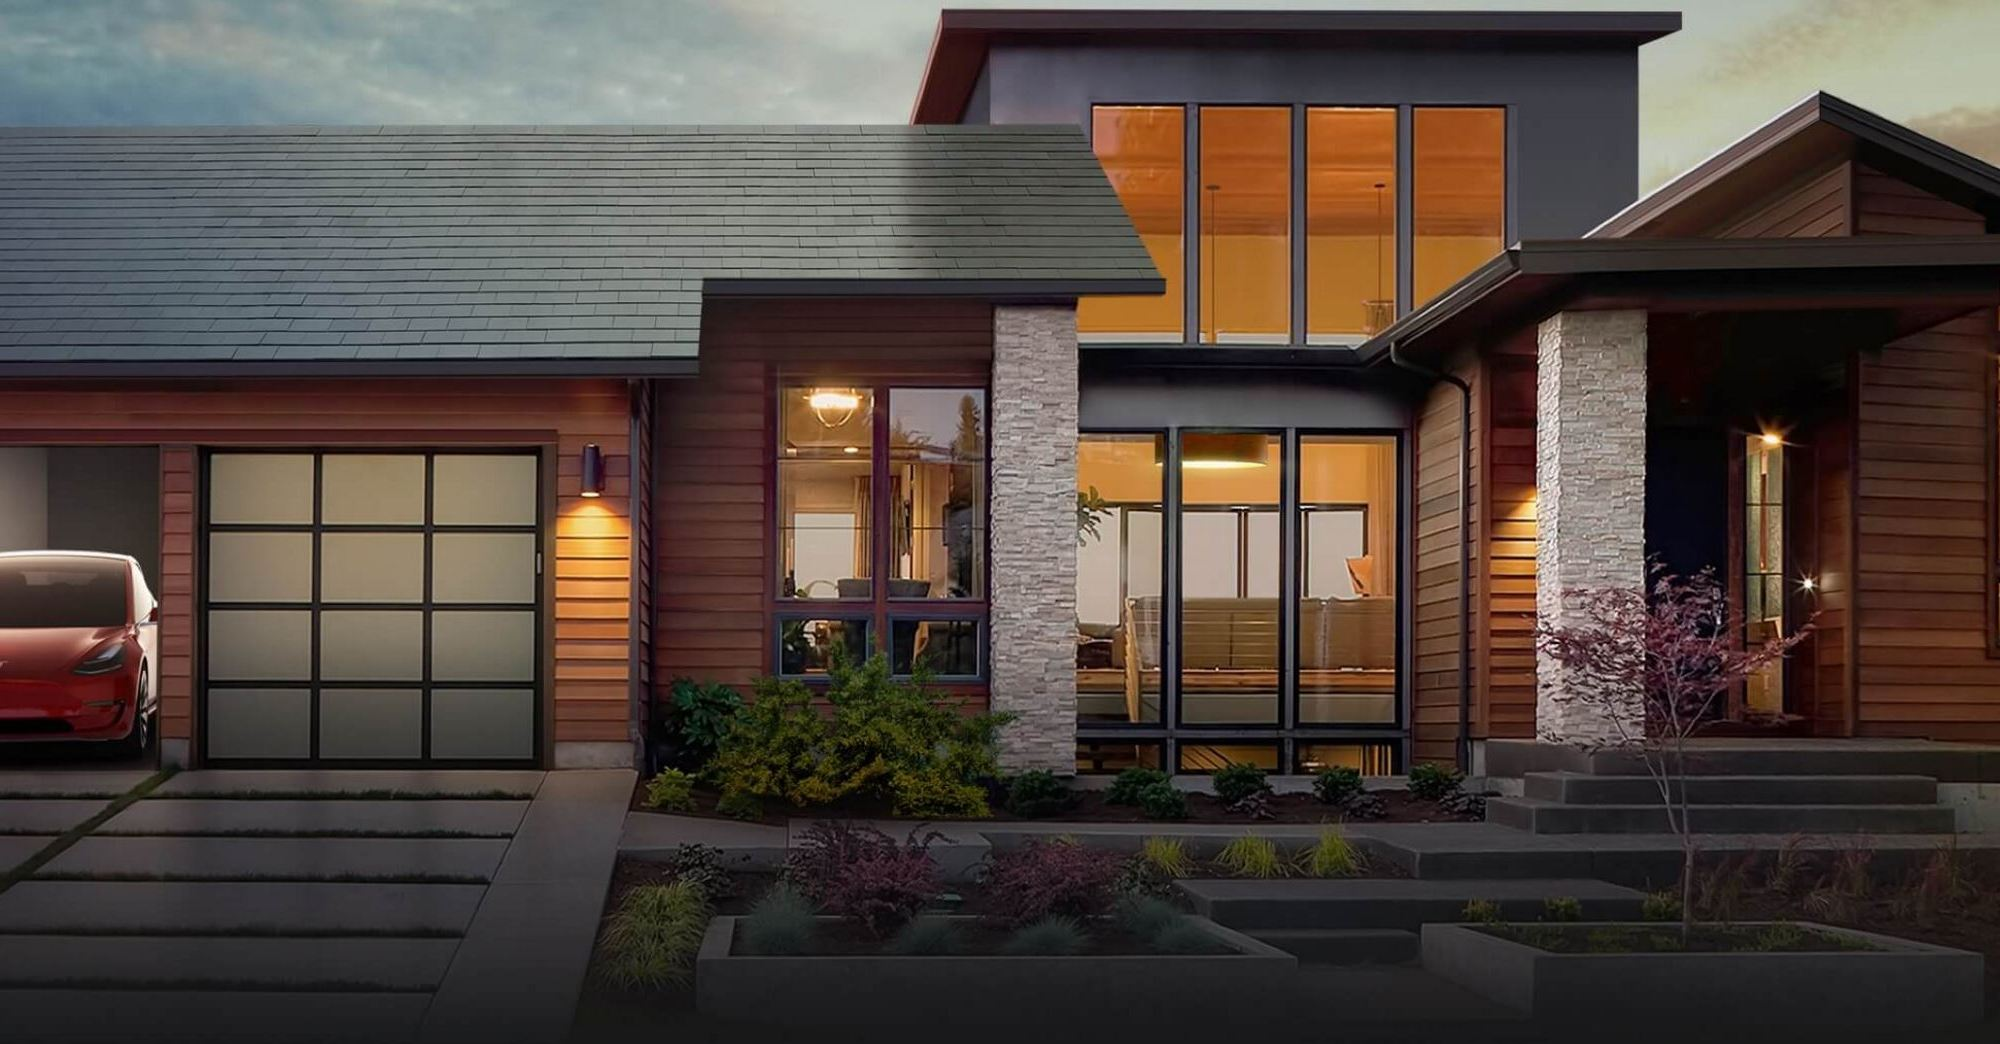 Tesla solar roof, Powerwall battery, and Tesla car mockup